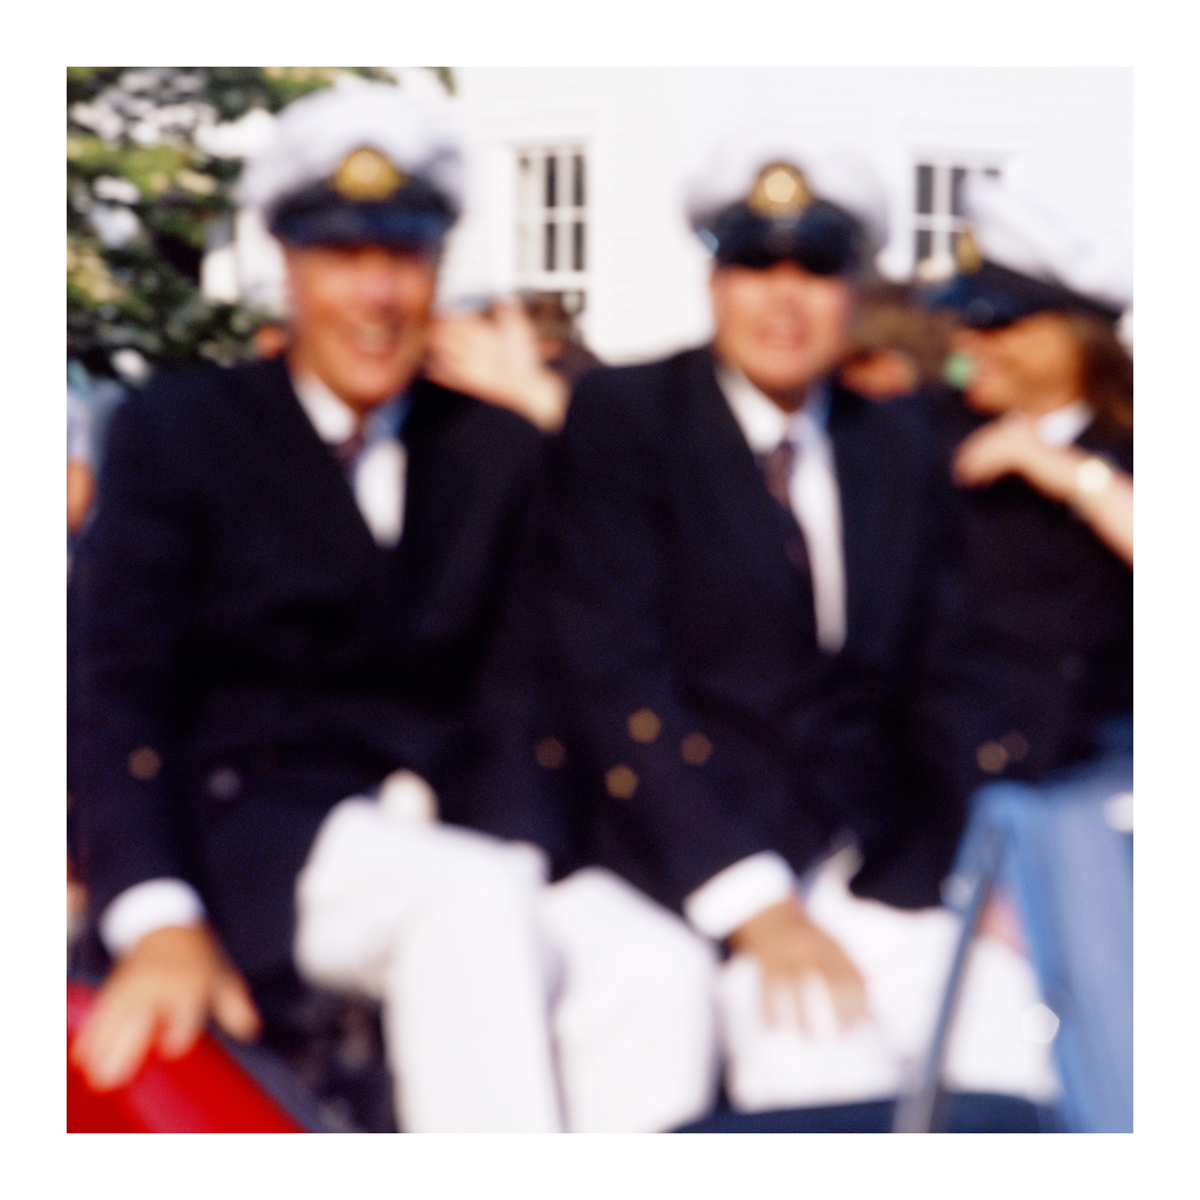 Parade, Edgartown, Massachusetts, 2011